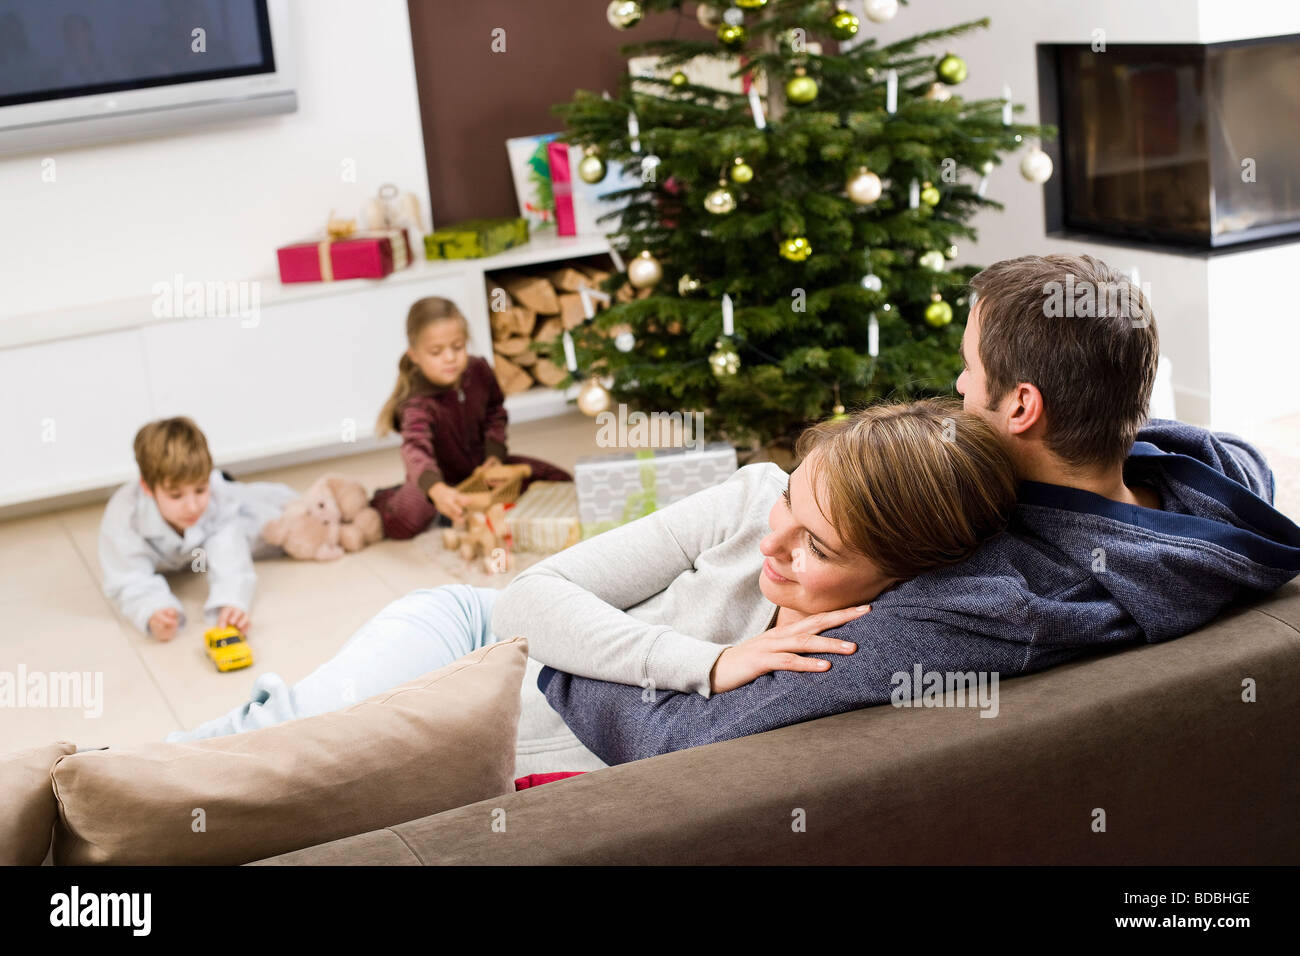 parents watching their children play on christmas morning - Stock Image